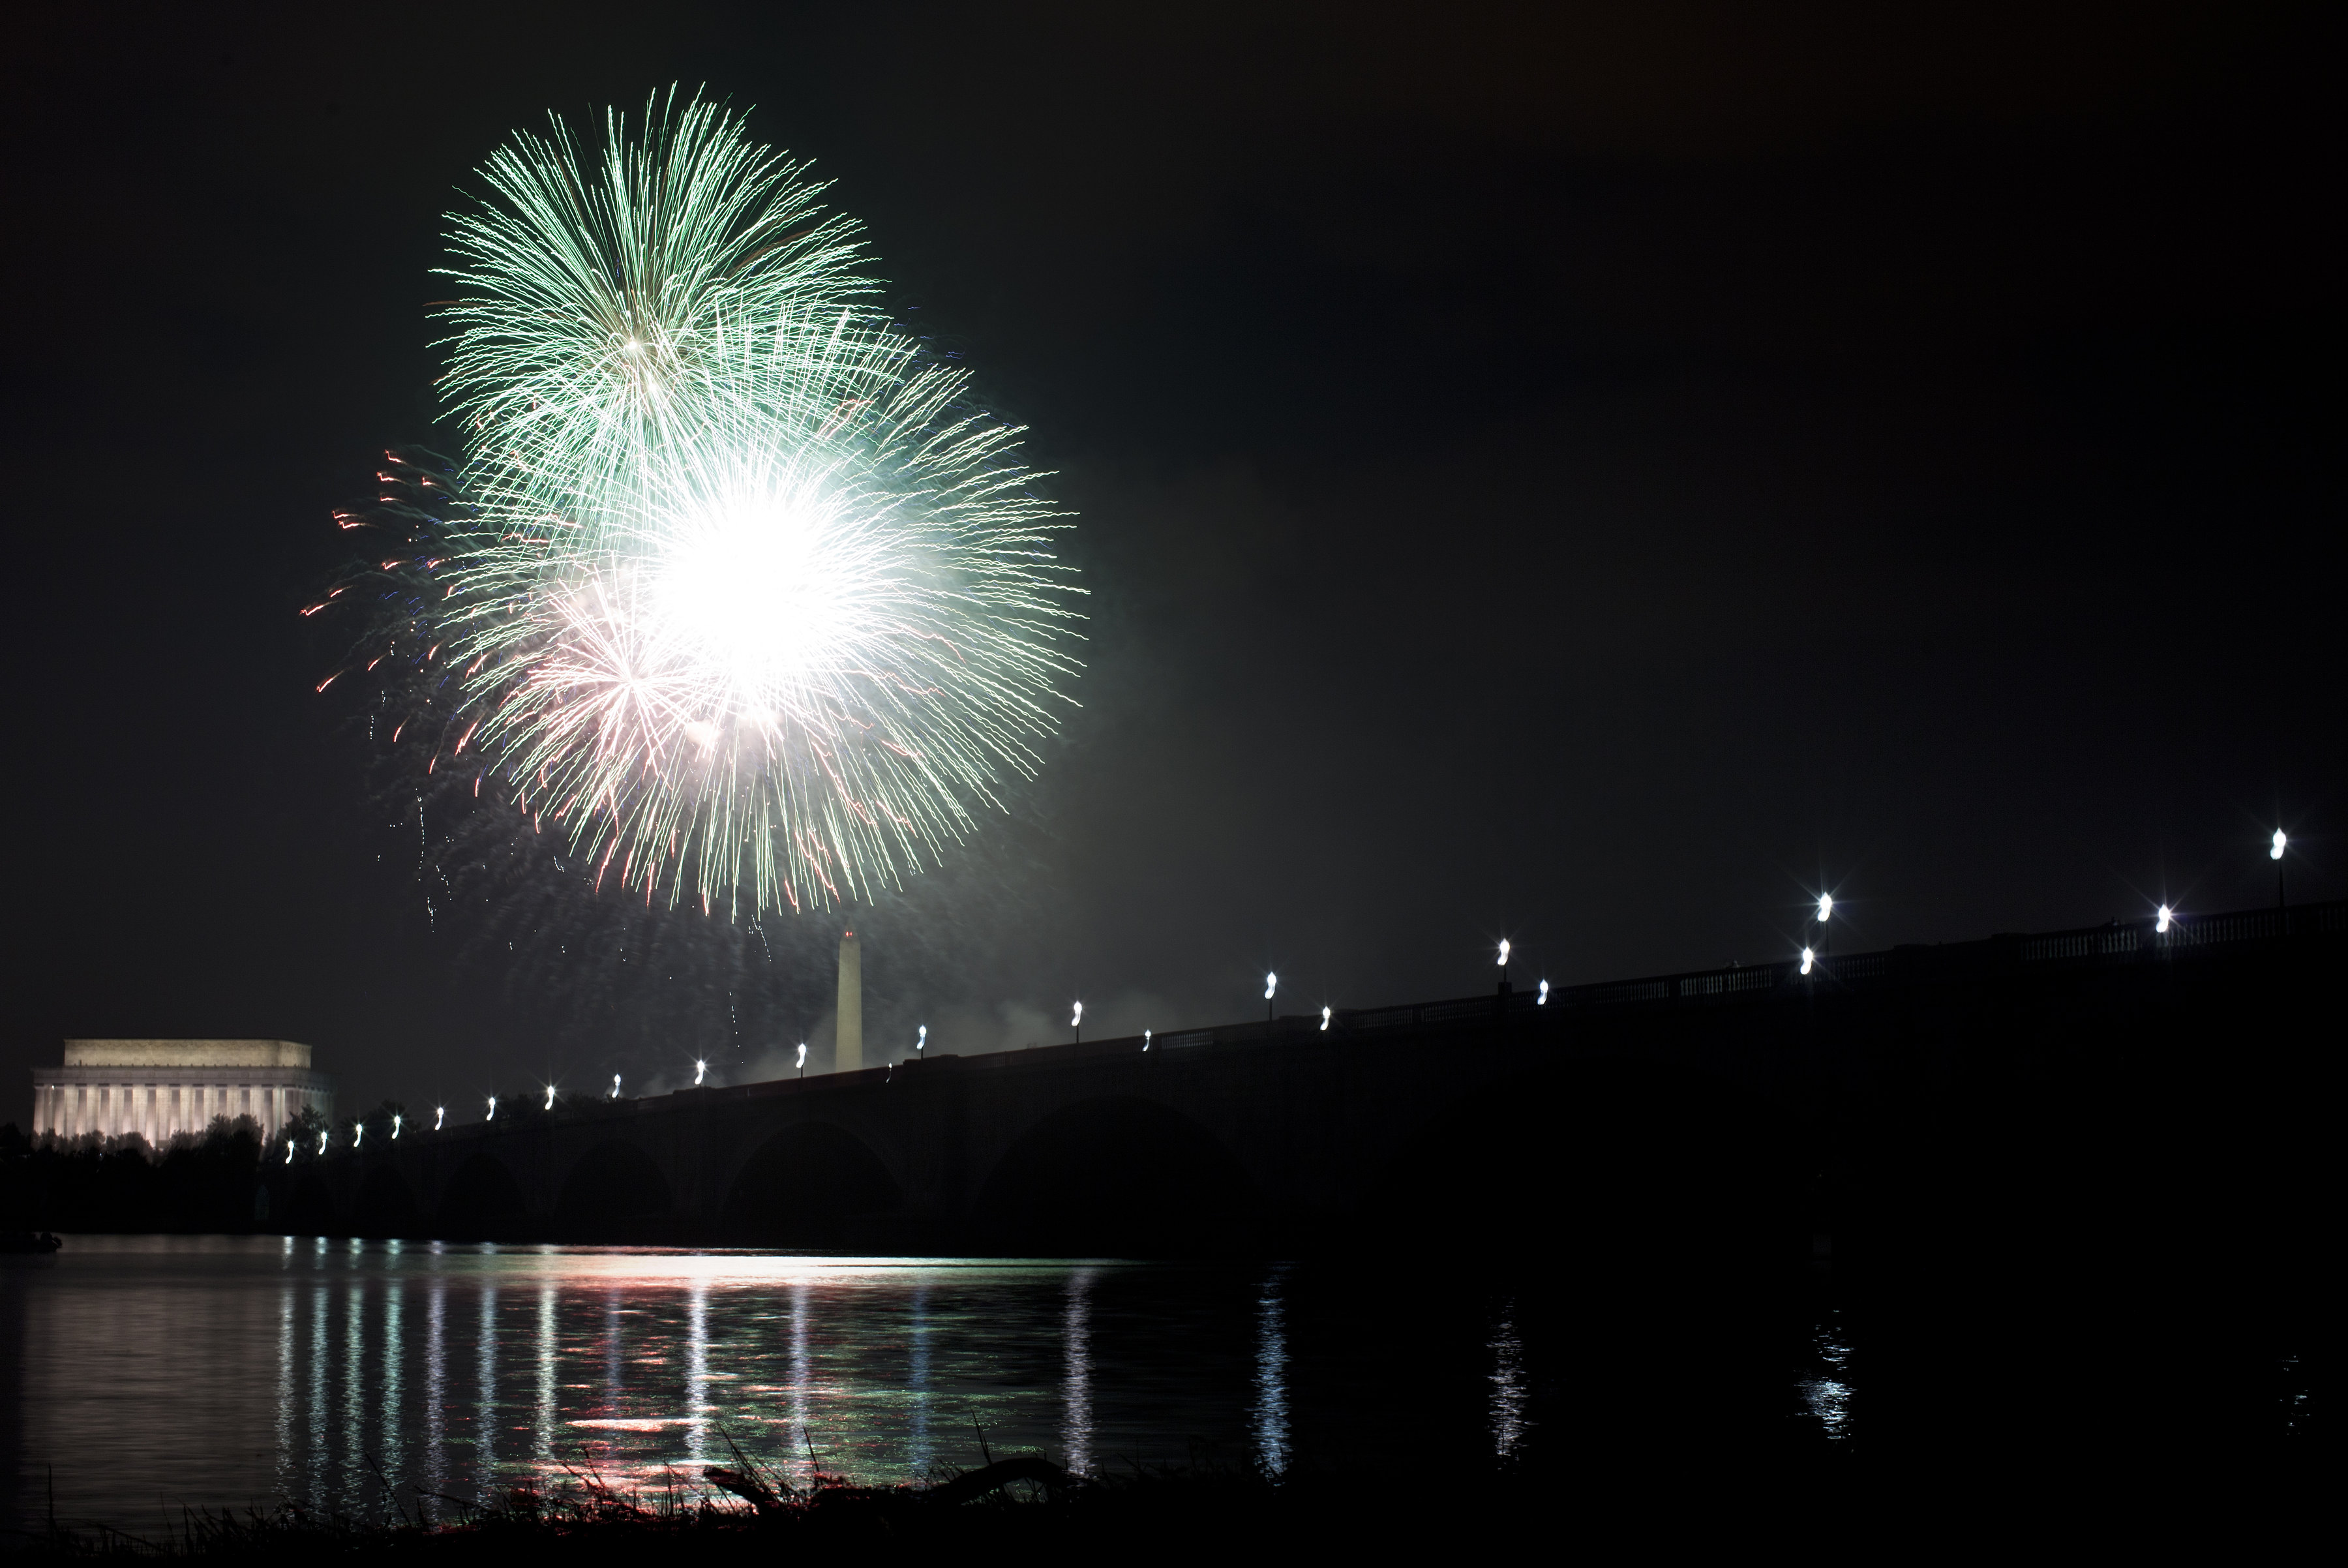 Nation's Capitol Celebrates Independence Day With Fireworks